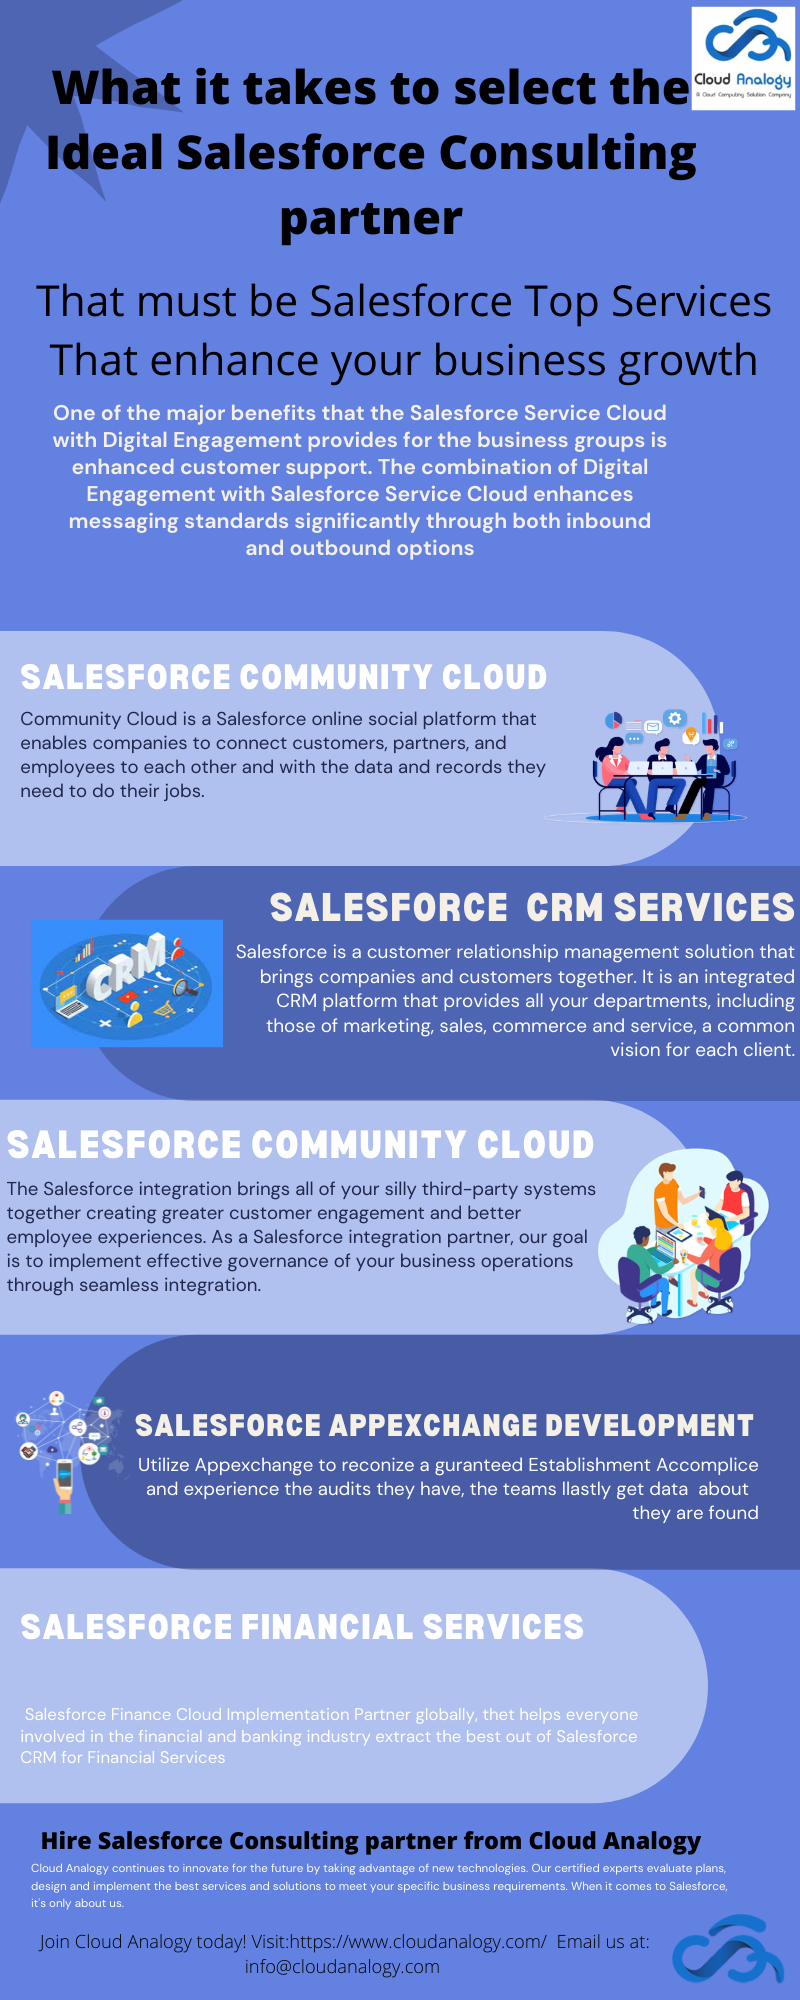 What It Takes to Select the Ideal Salesforce Consulting Partner